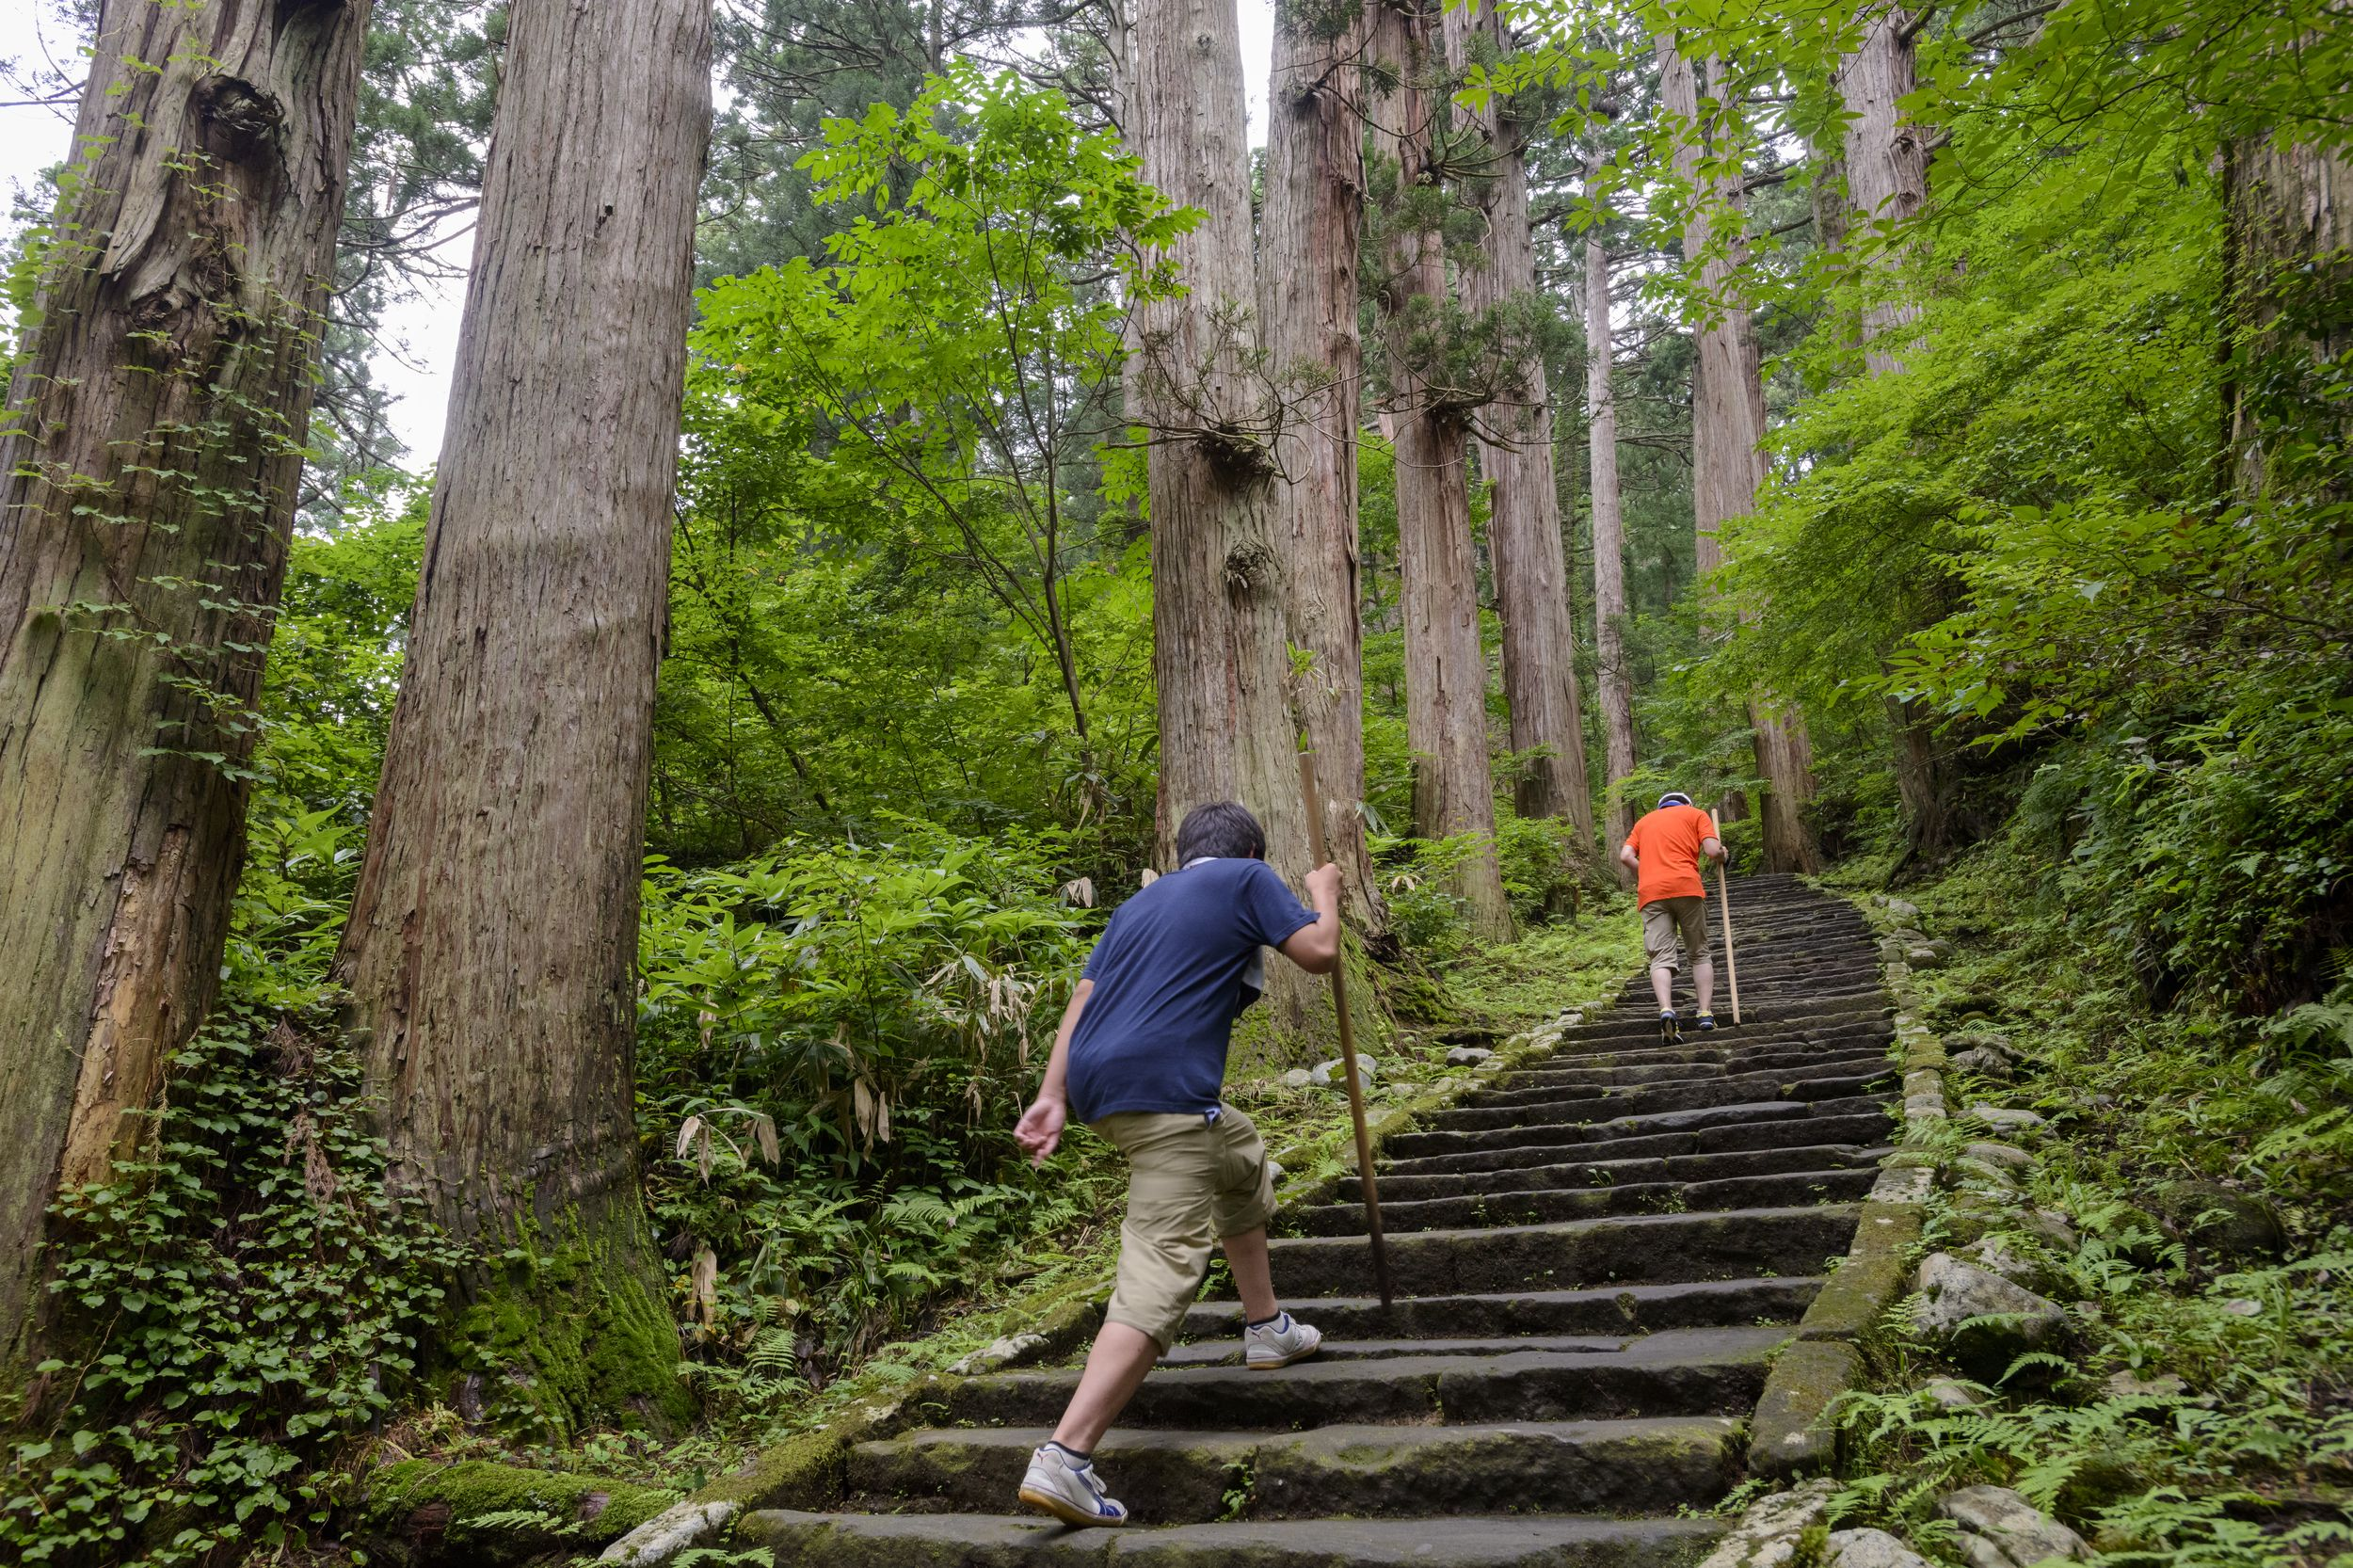 As you climbing the 2,446 steps up Haguro-san, you will pass through an ancient cedar forest with trees that are up to 1,000 years old. Courtesy of JNTO